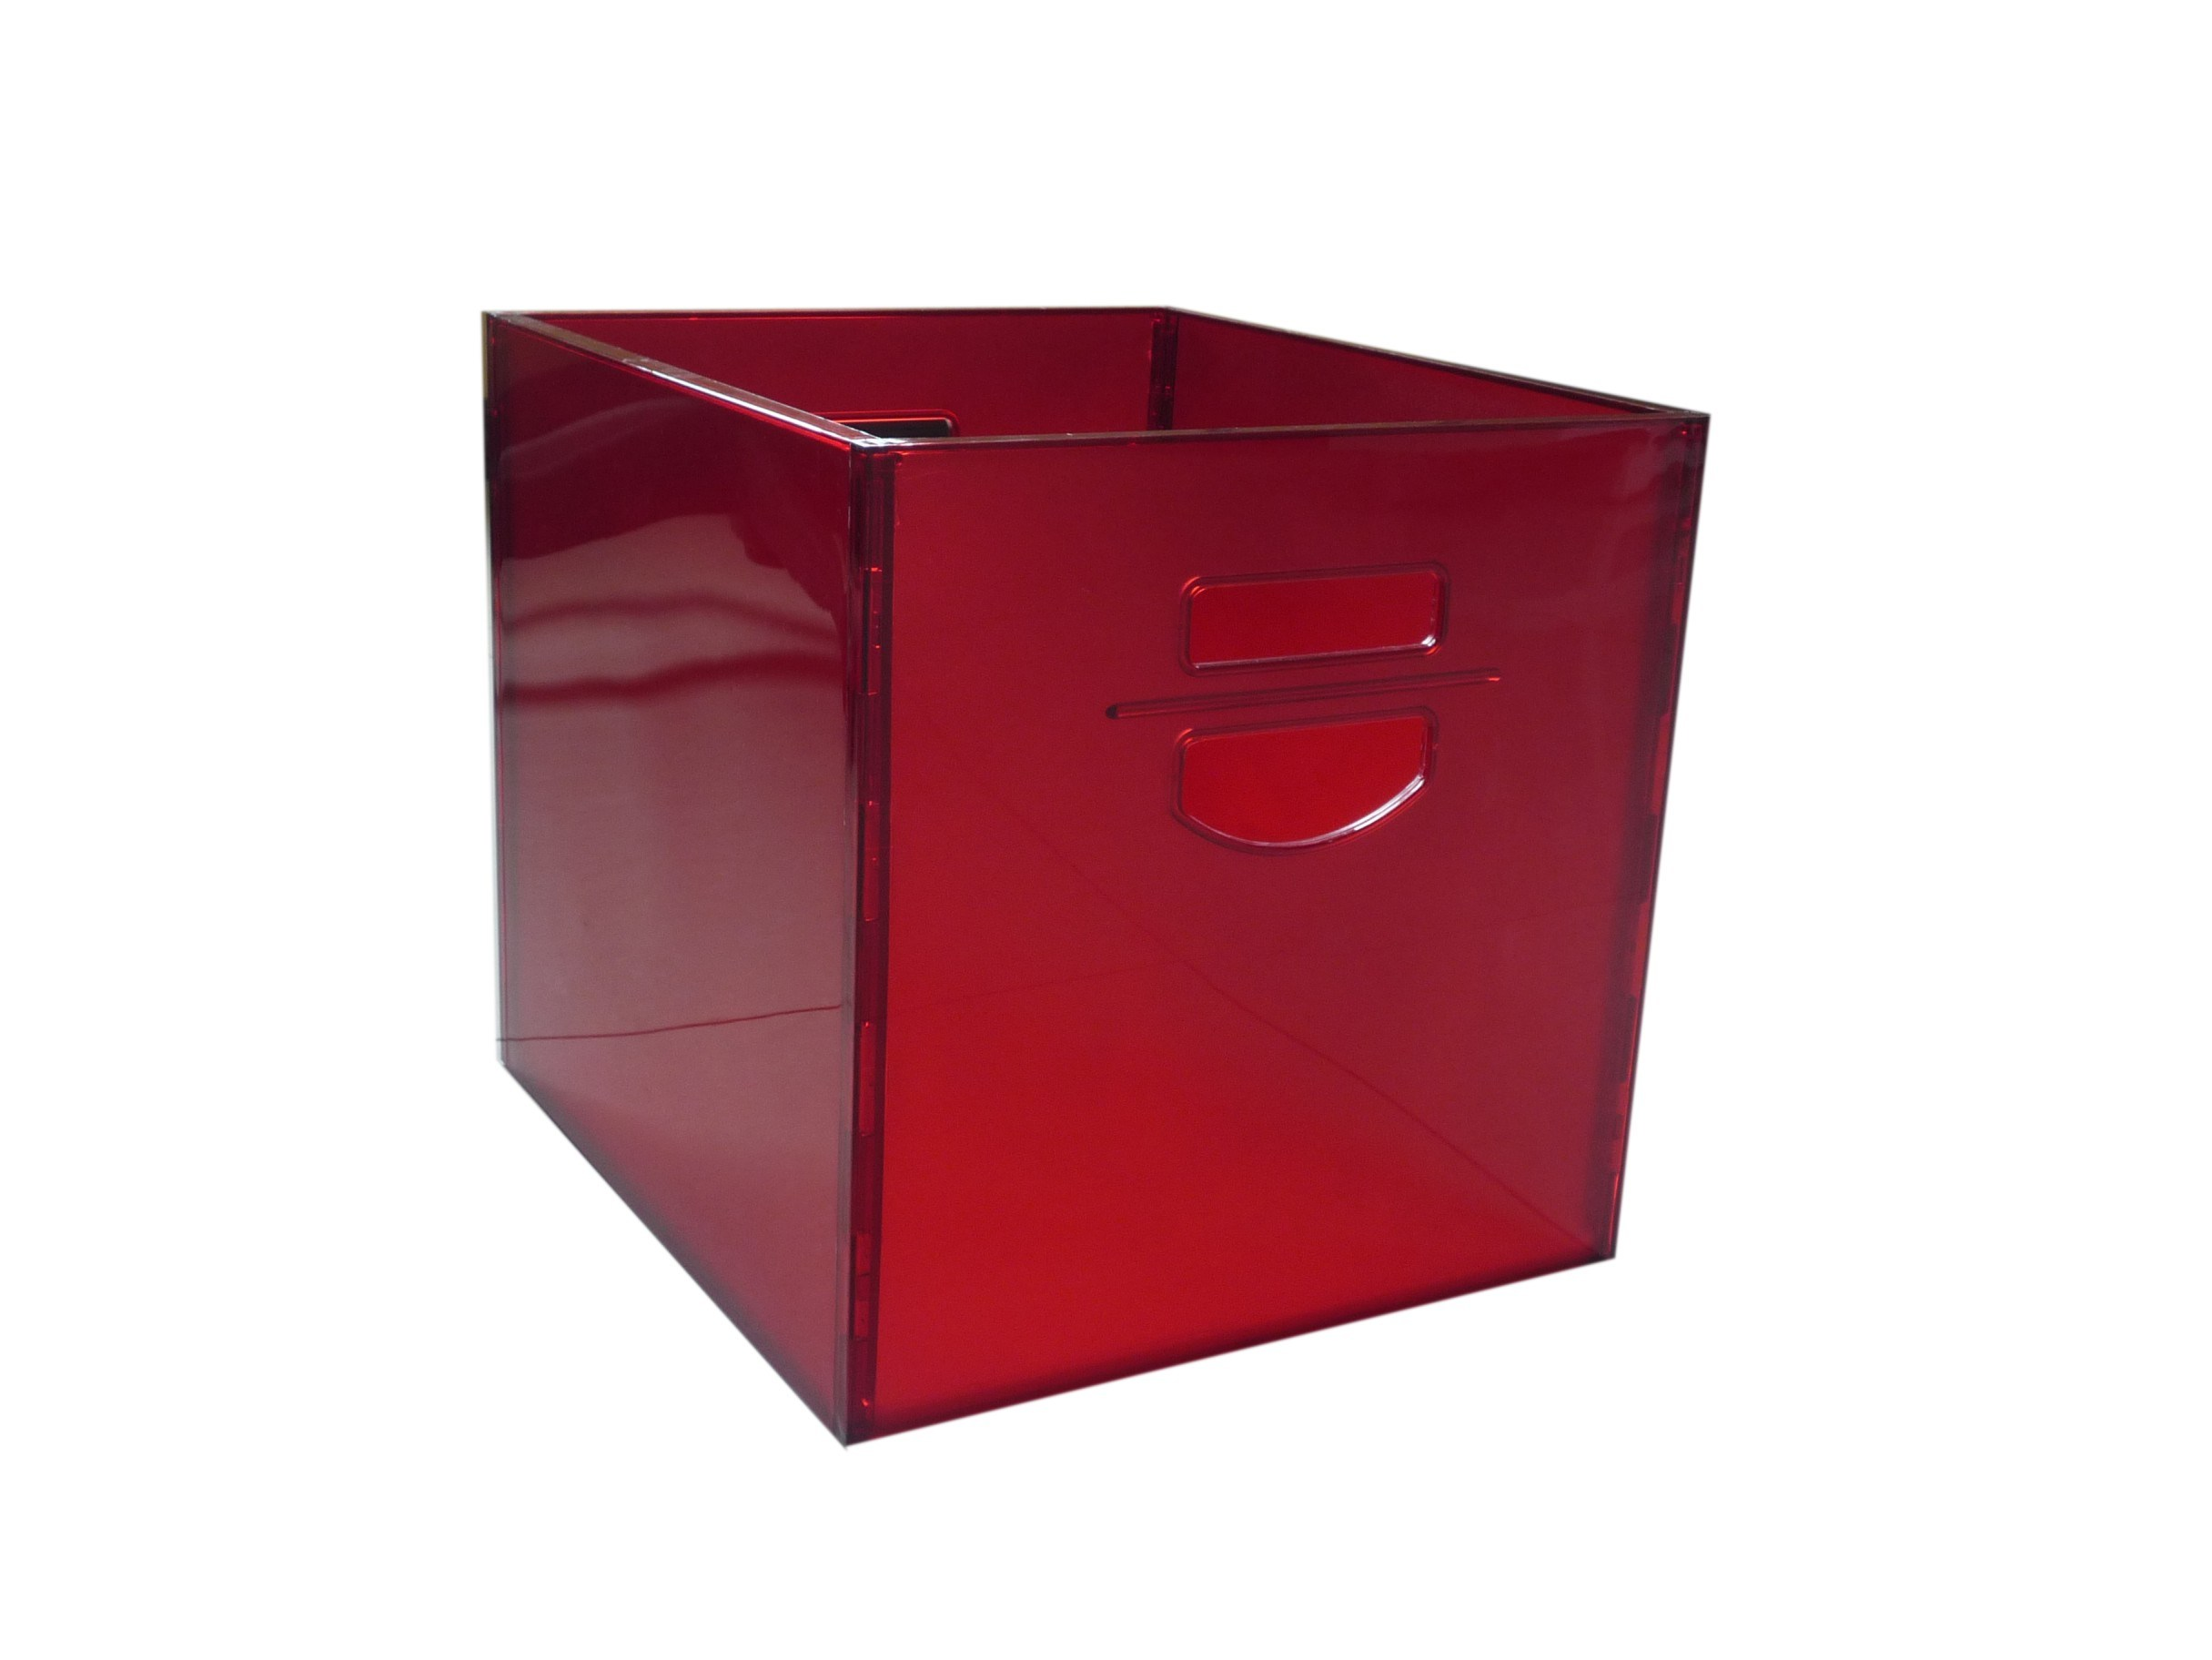 Plastic Storage Cubes B In Bin Plastic Full Clear 4 Piece  sc 1 st  Listitdallas & Acrylic Storage Cubes - Listitdallas